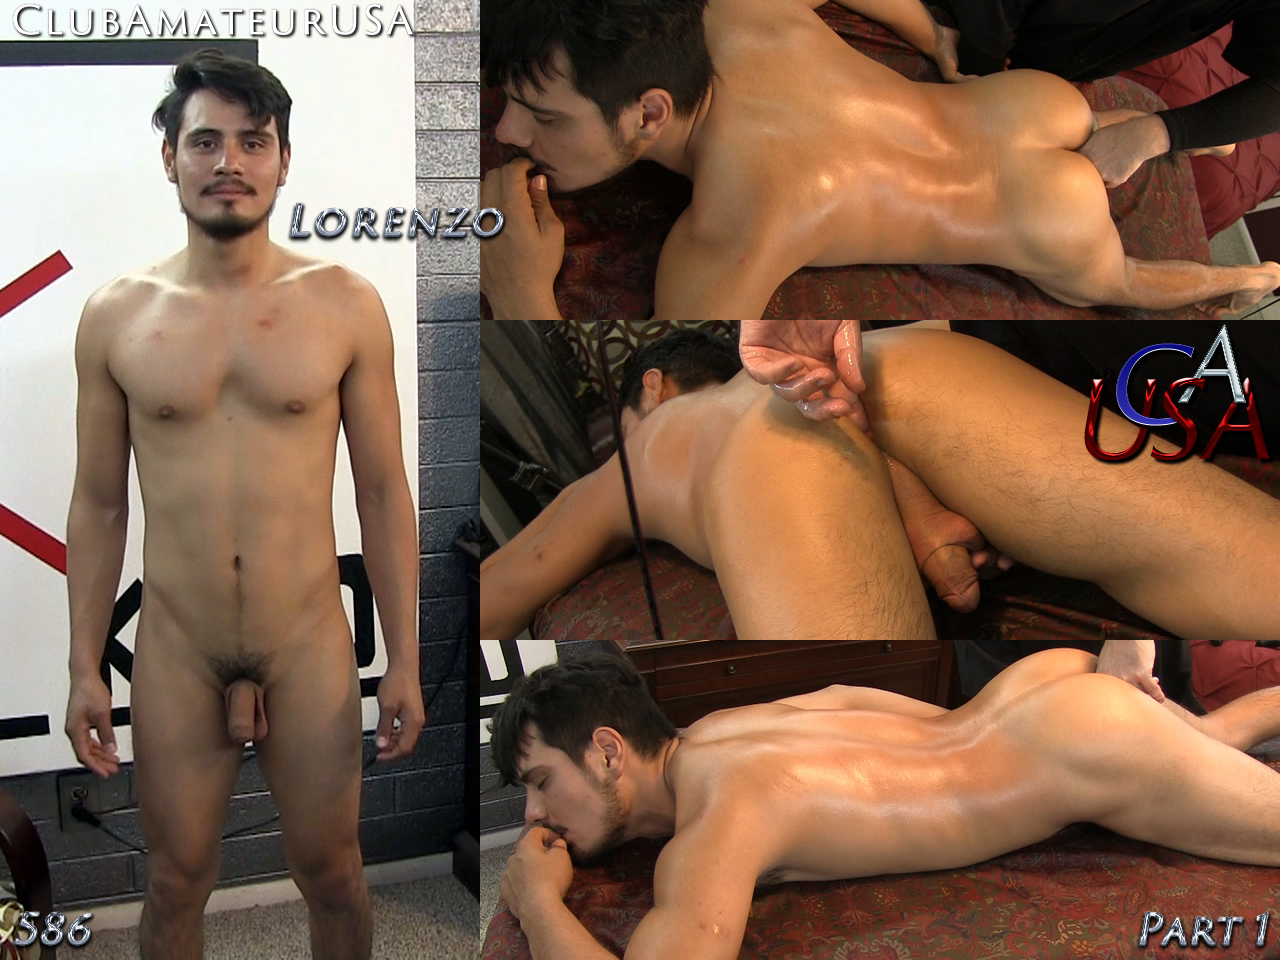 Download or Stream CAUSA 586 Lorenzo - Part 1 - Click Here Now